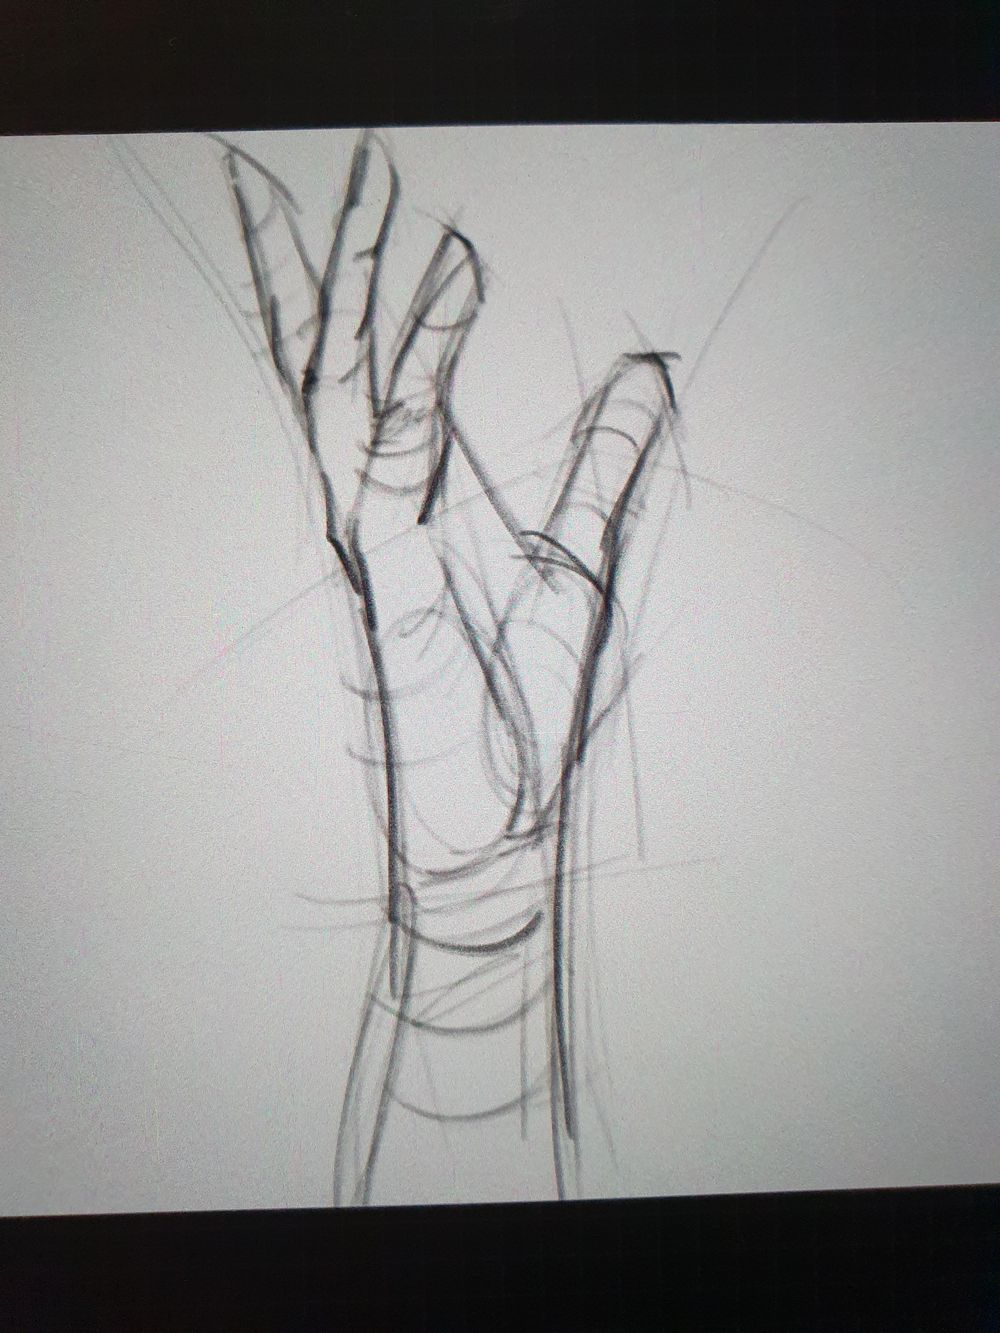 Drawing Session - image 2 - student project